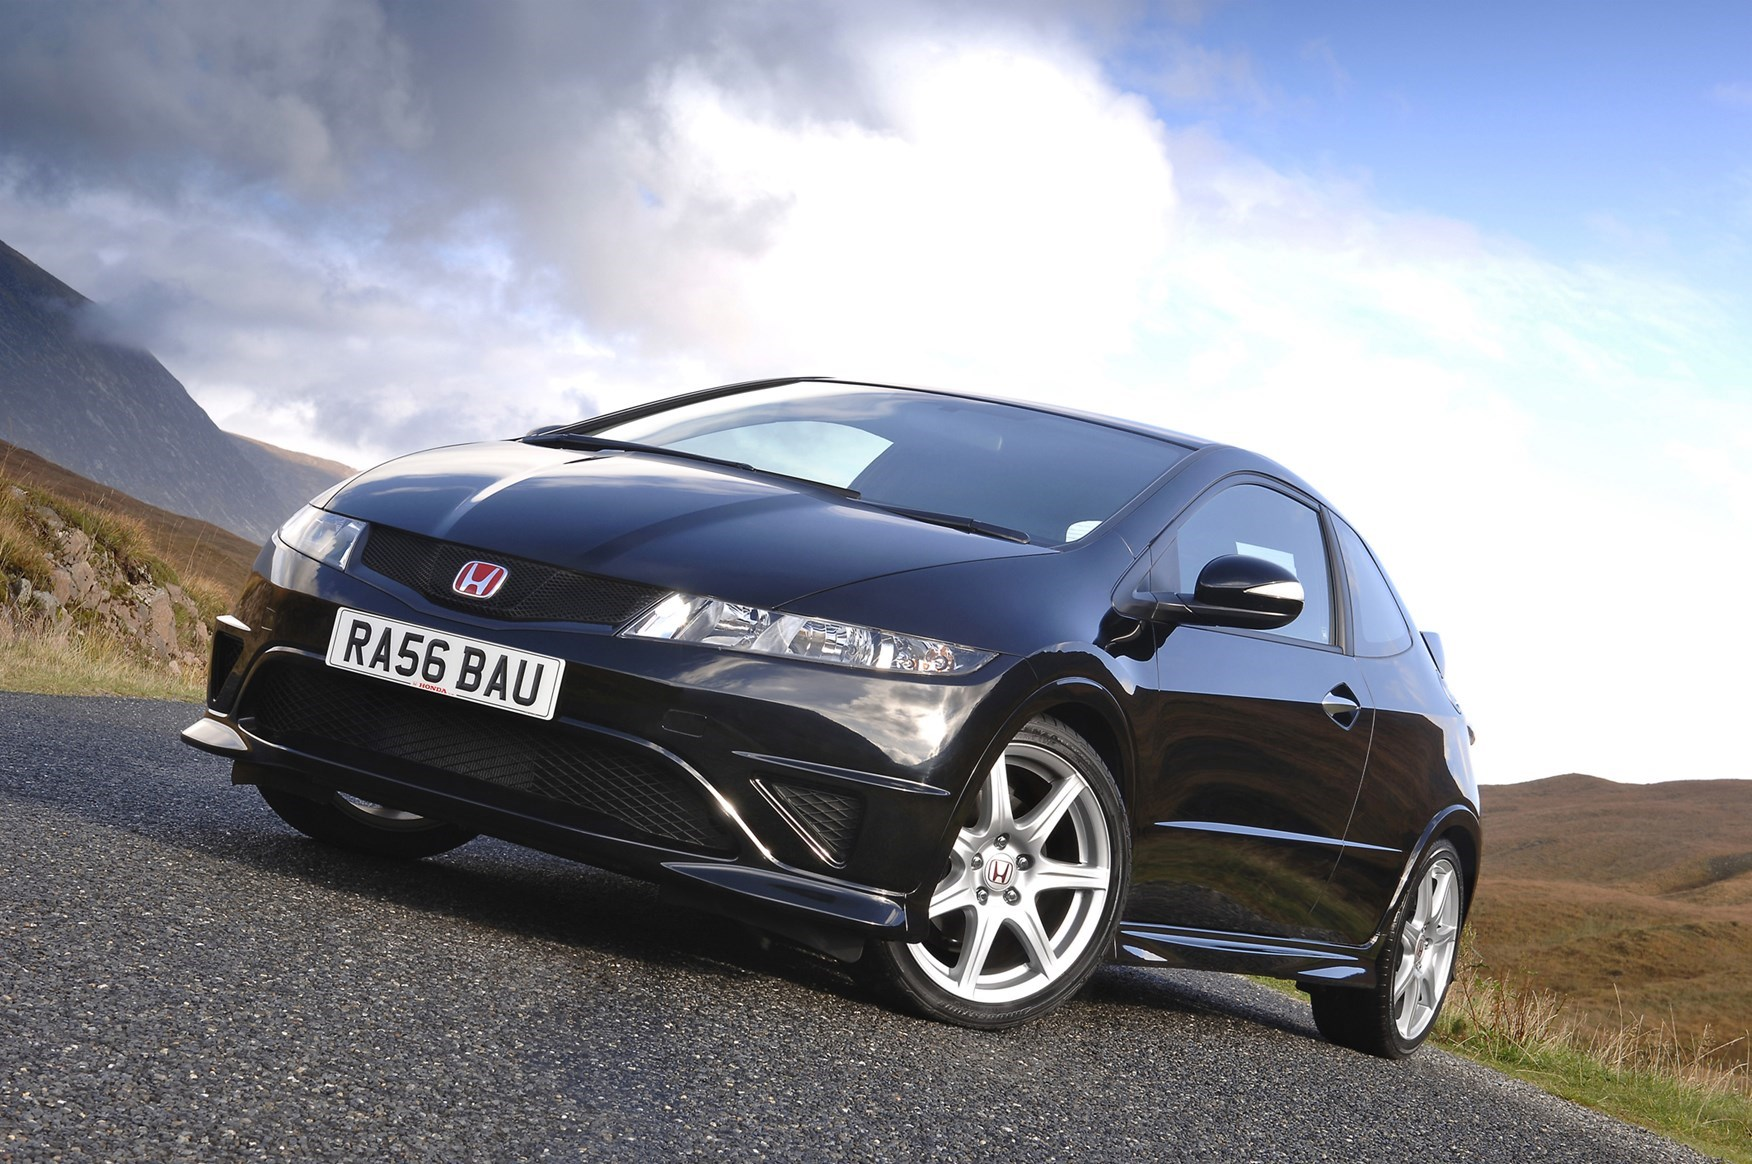 Honda Civic Type R - used hatchbacks for less than £4k